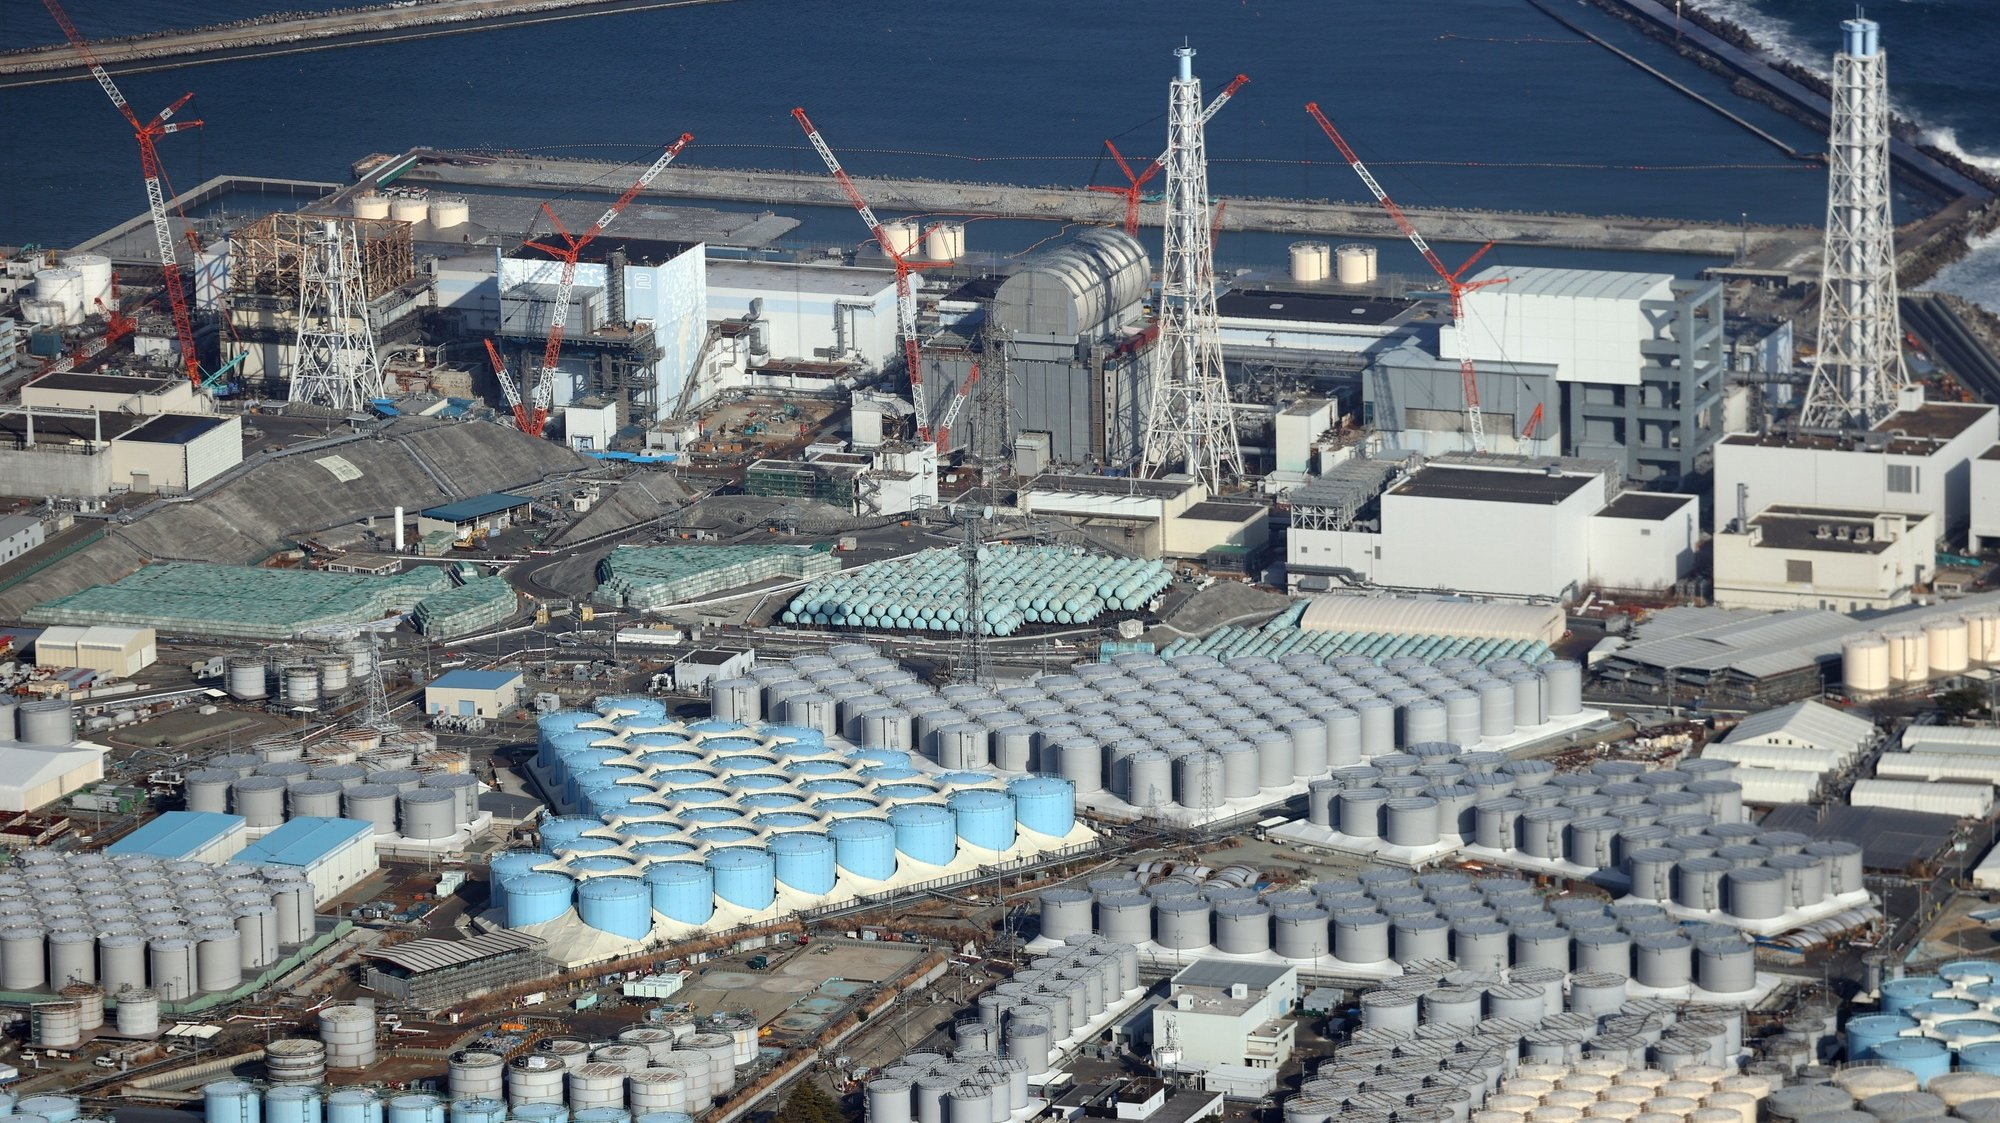 epa09131838 An aerial view shows tanks containing contaminated water at the Fukushima Daiichi nuclear power plant, which suffered meltdowns on 11 March 2011, in Fukushima prefecture, northeastern Japan, 14 February 2021 (reissued 13 April 2021). On 13 April 2021, the Japanese government officially decided to release treated water containing tritium from the crippled Fukushima Daiichi Nuclear Power Plant into the ocean.  EPA/JIJI PRESS JAPAN OUT EDITORIAL USE ONLY/  NO ARCHIVES